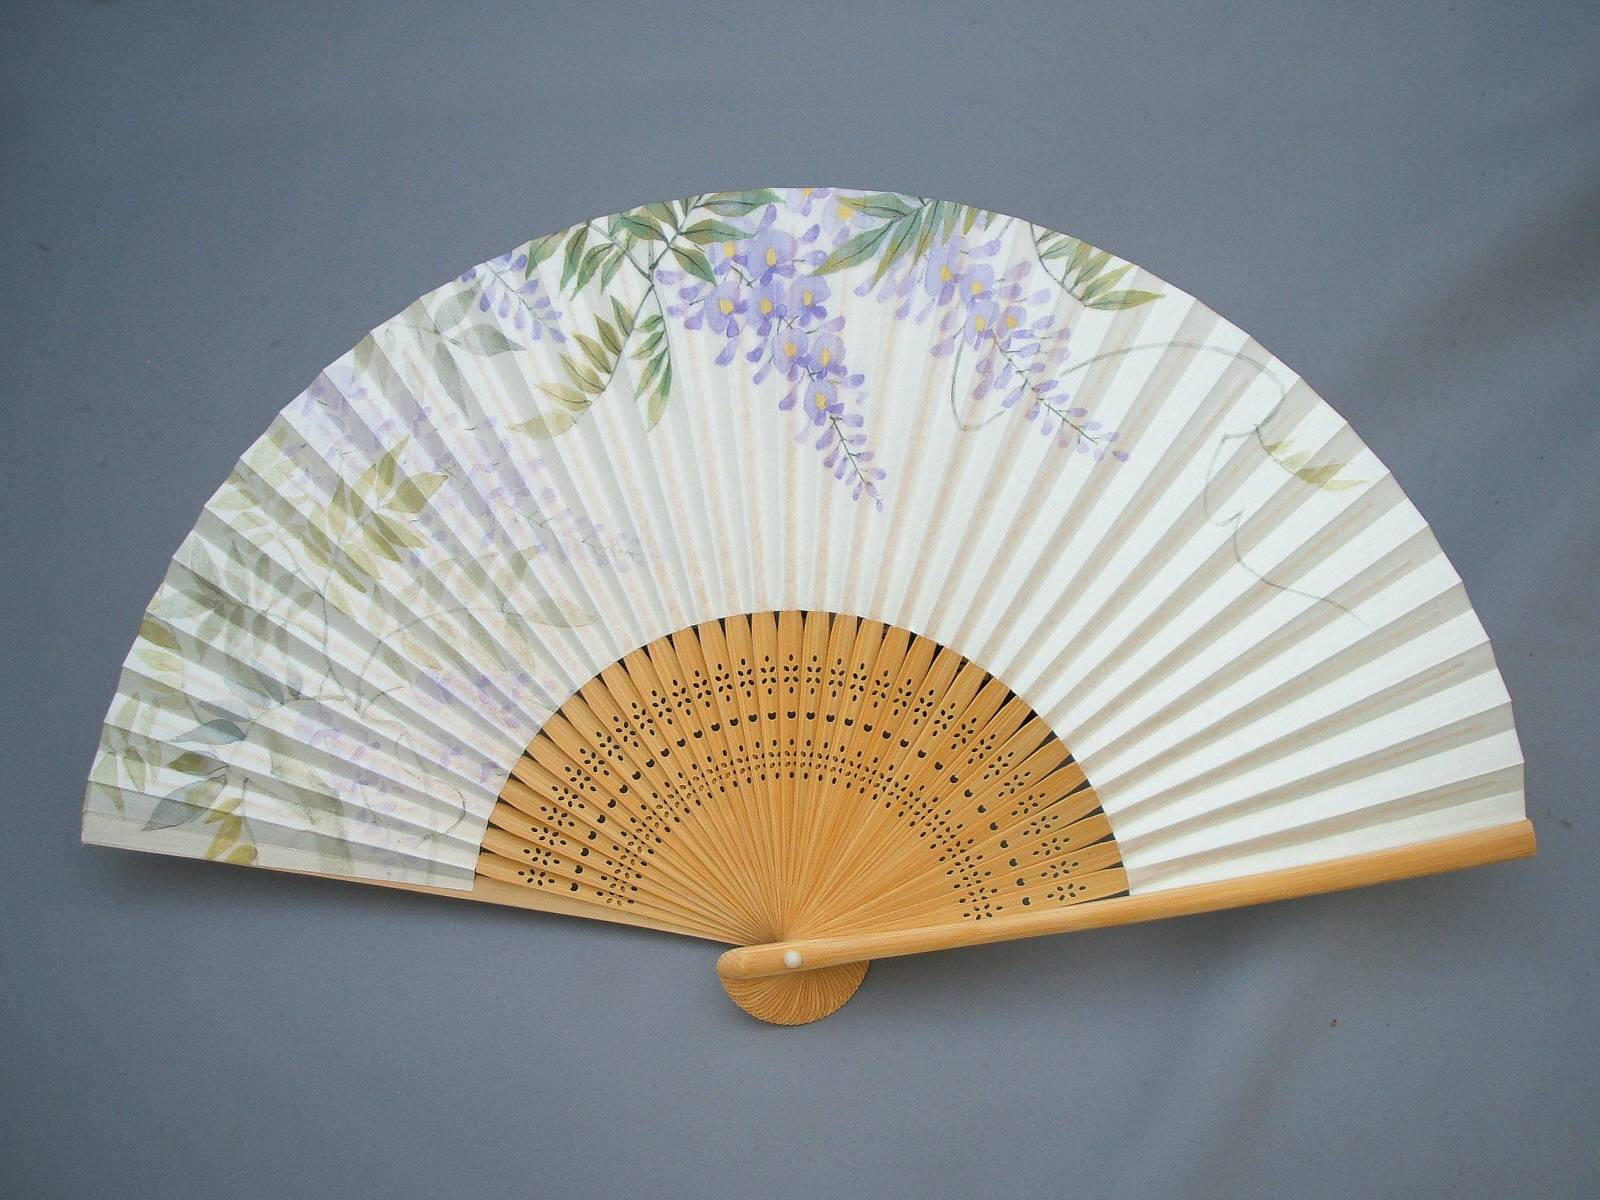 Summer sensu for women